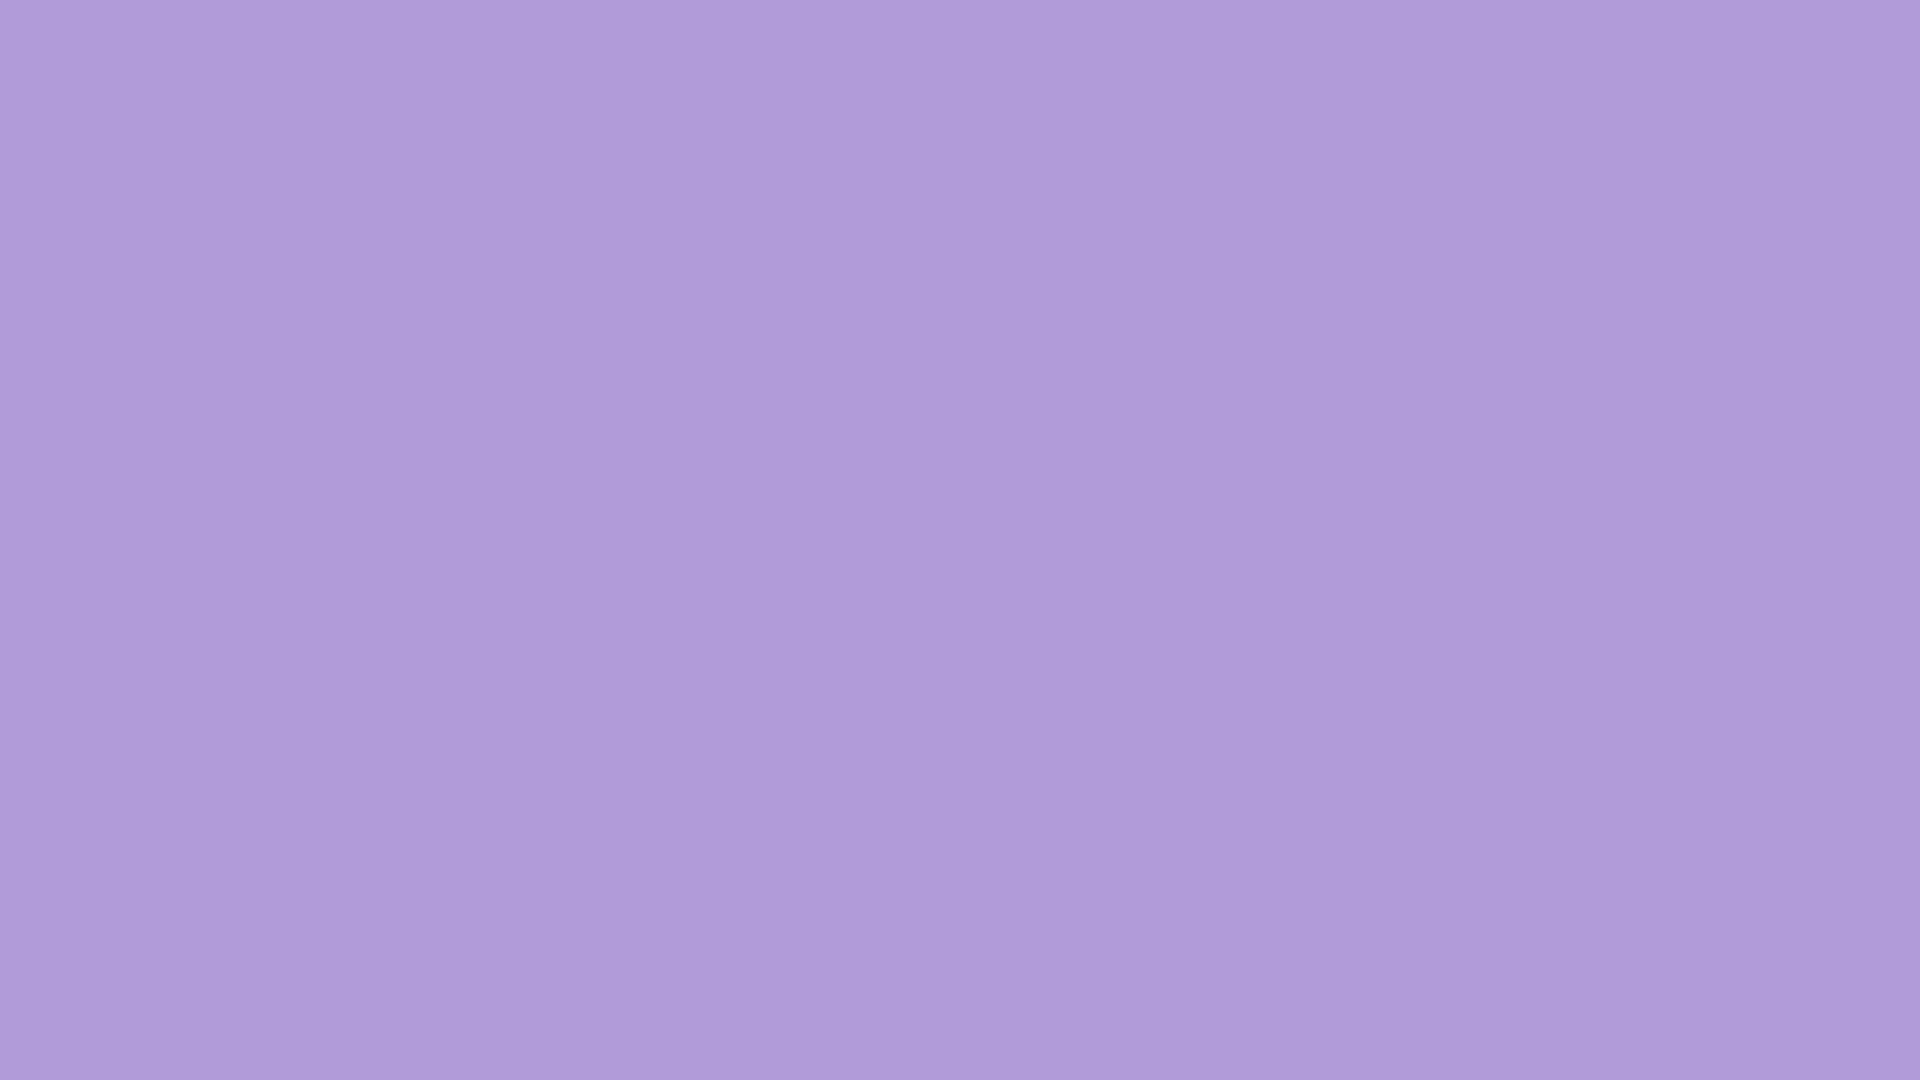 9 99932 light pastel purple solid data src tumblr purple